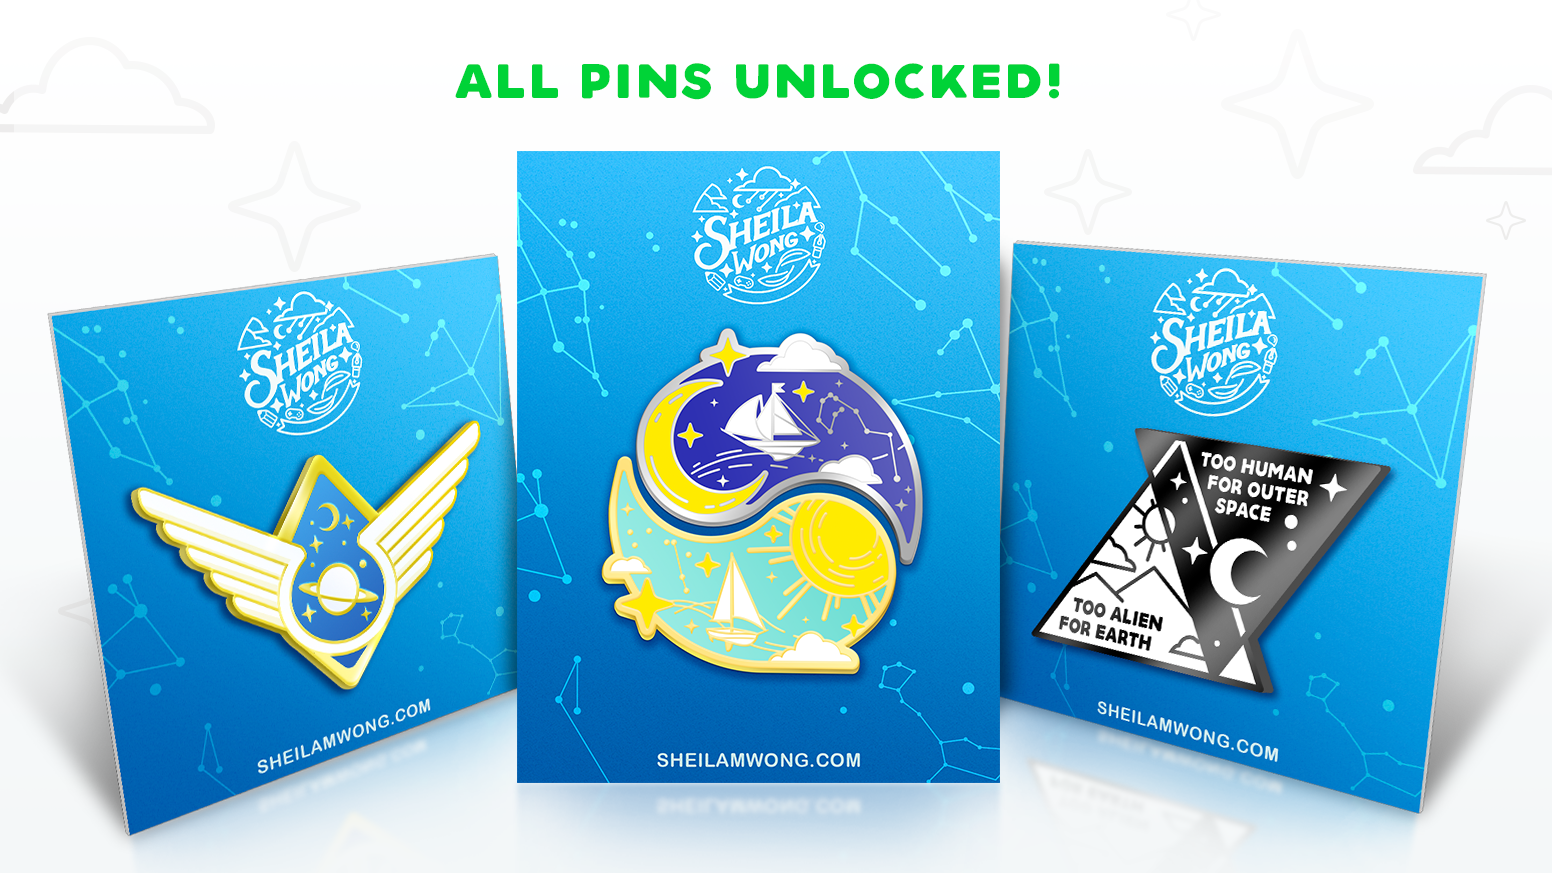 Enamel pins inspired by space exploration and our ties to the cosmos.